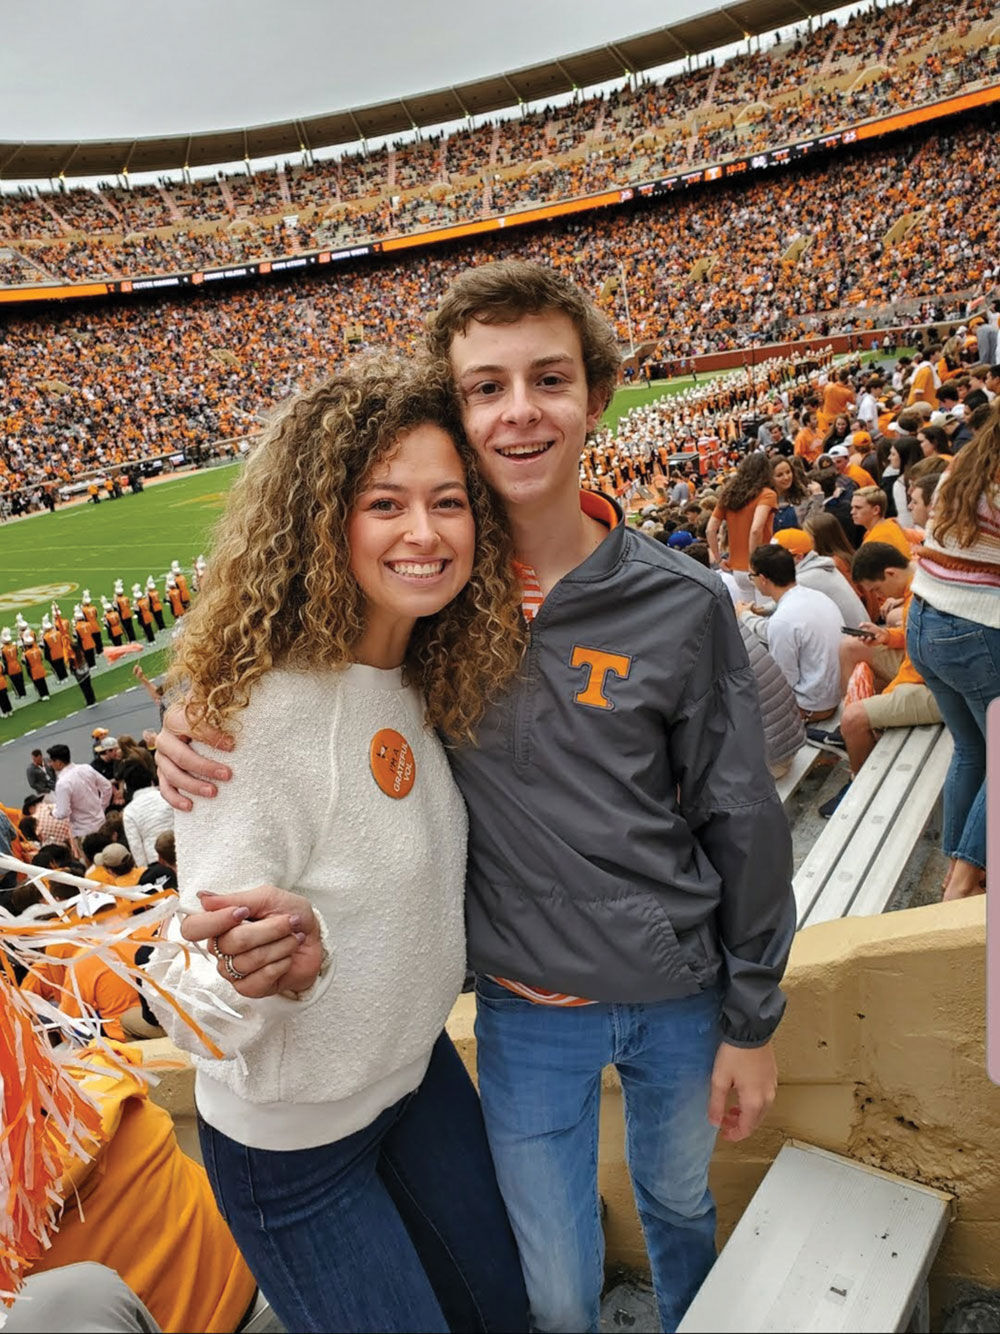 Carolanna Gatlin, left (recipient of scholarship from WCAR) and her brother Miller